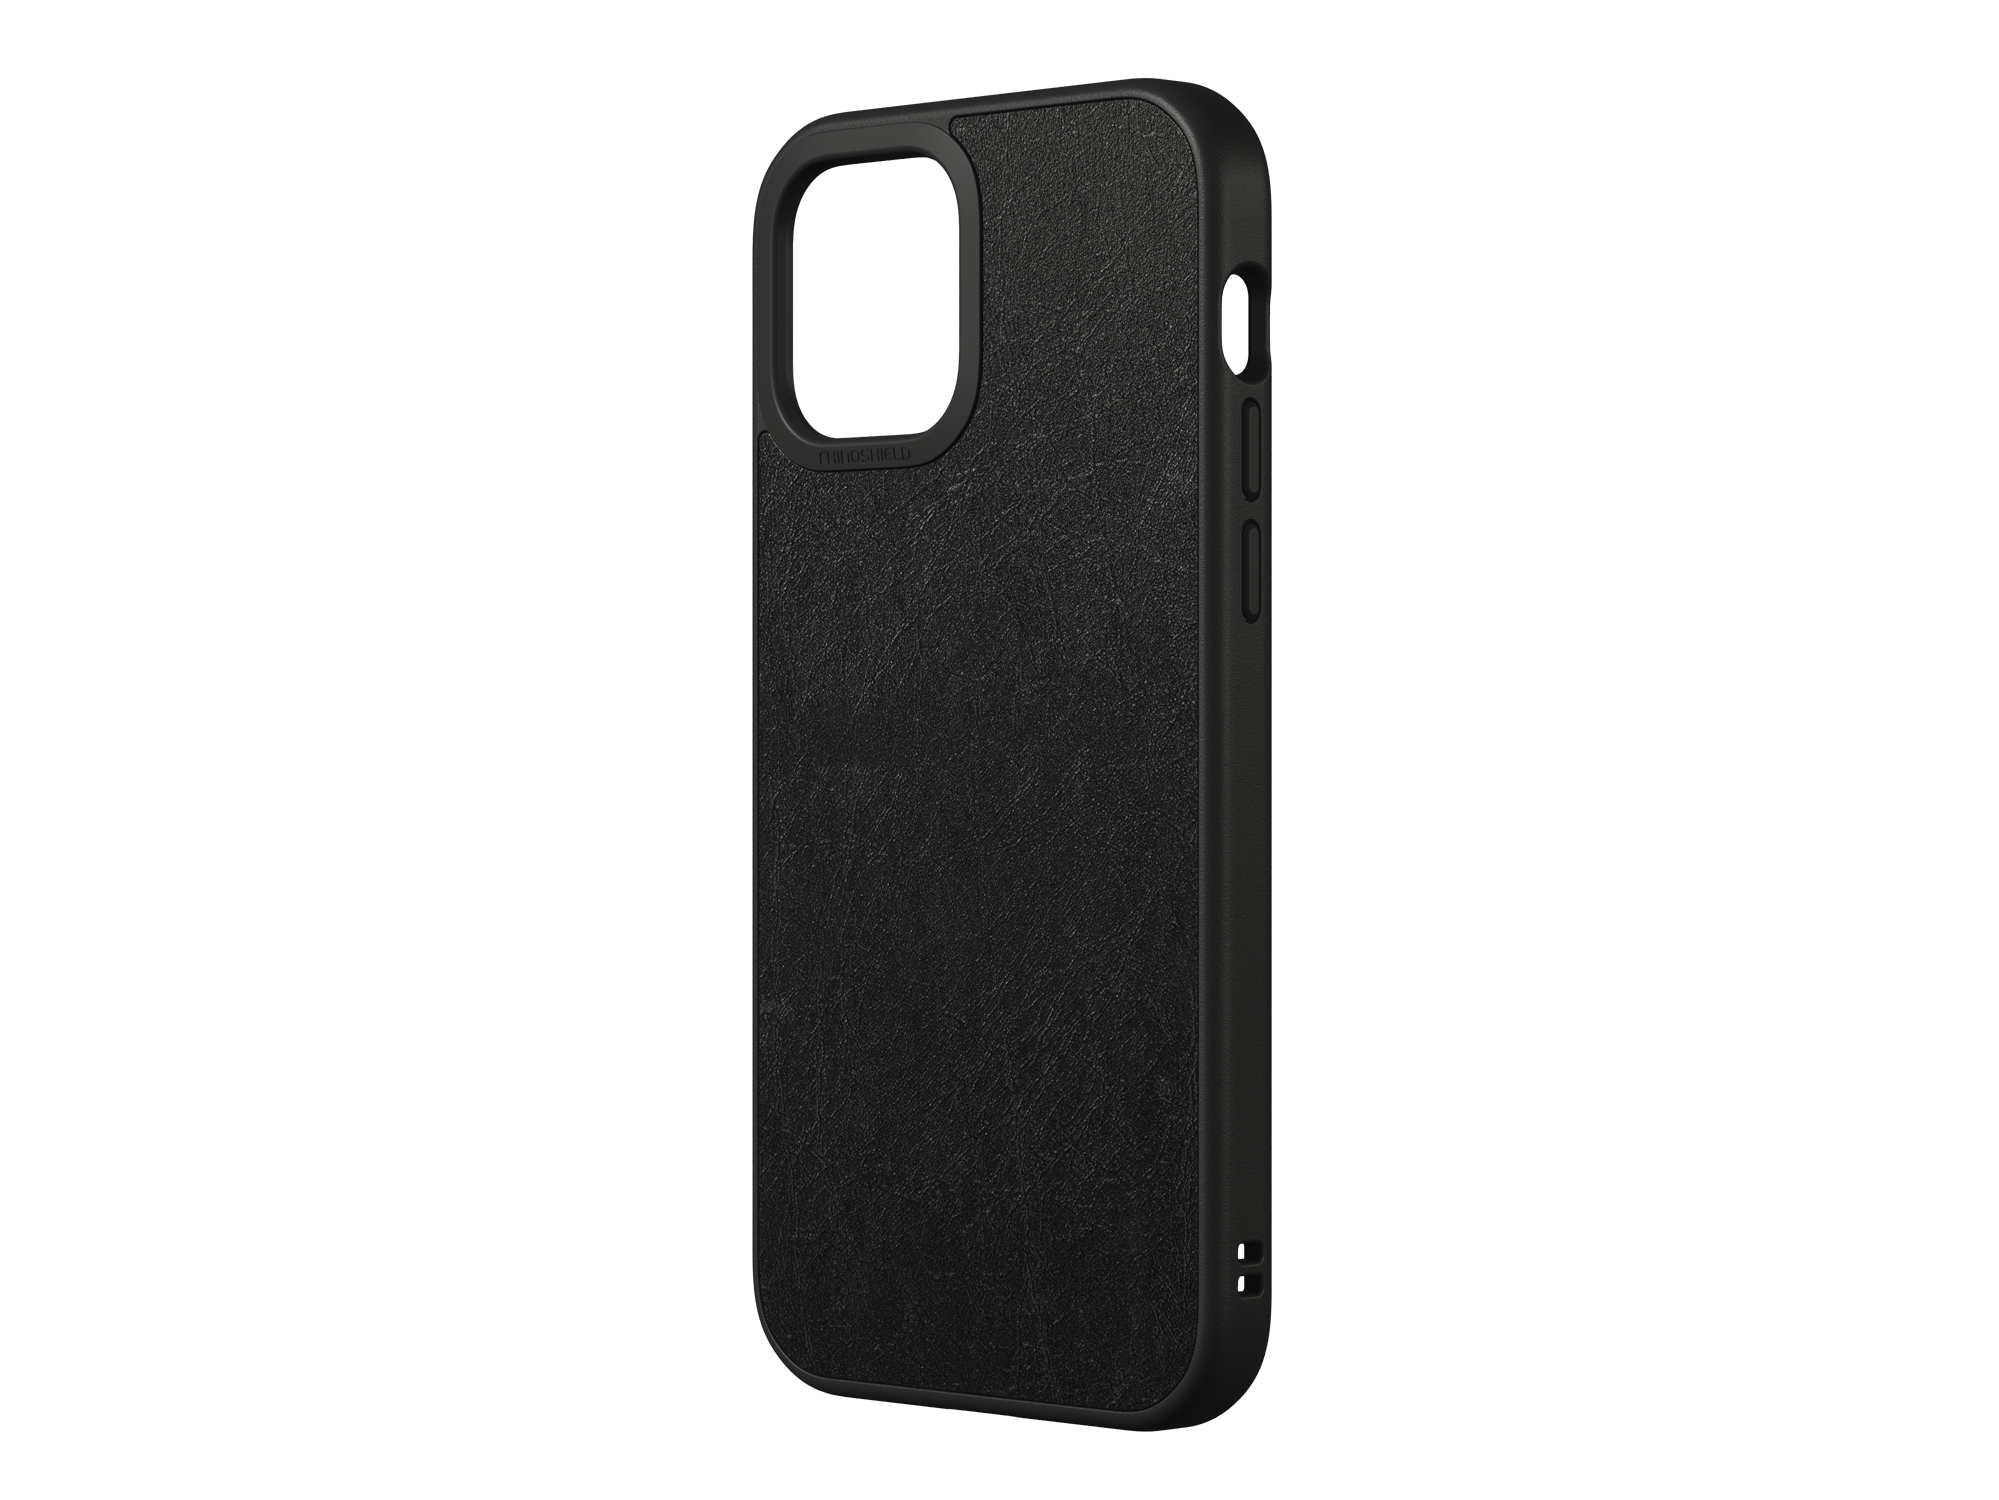 SolidSuit for iPhone 12 Pro